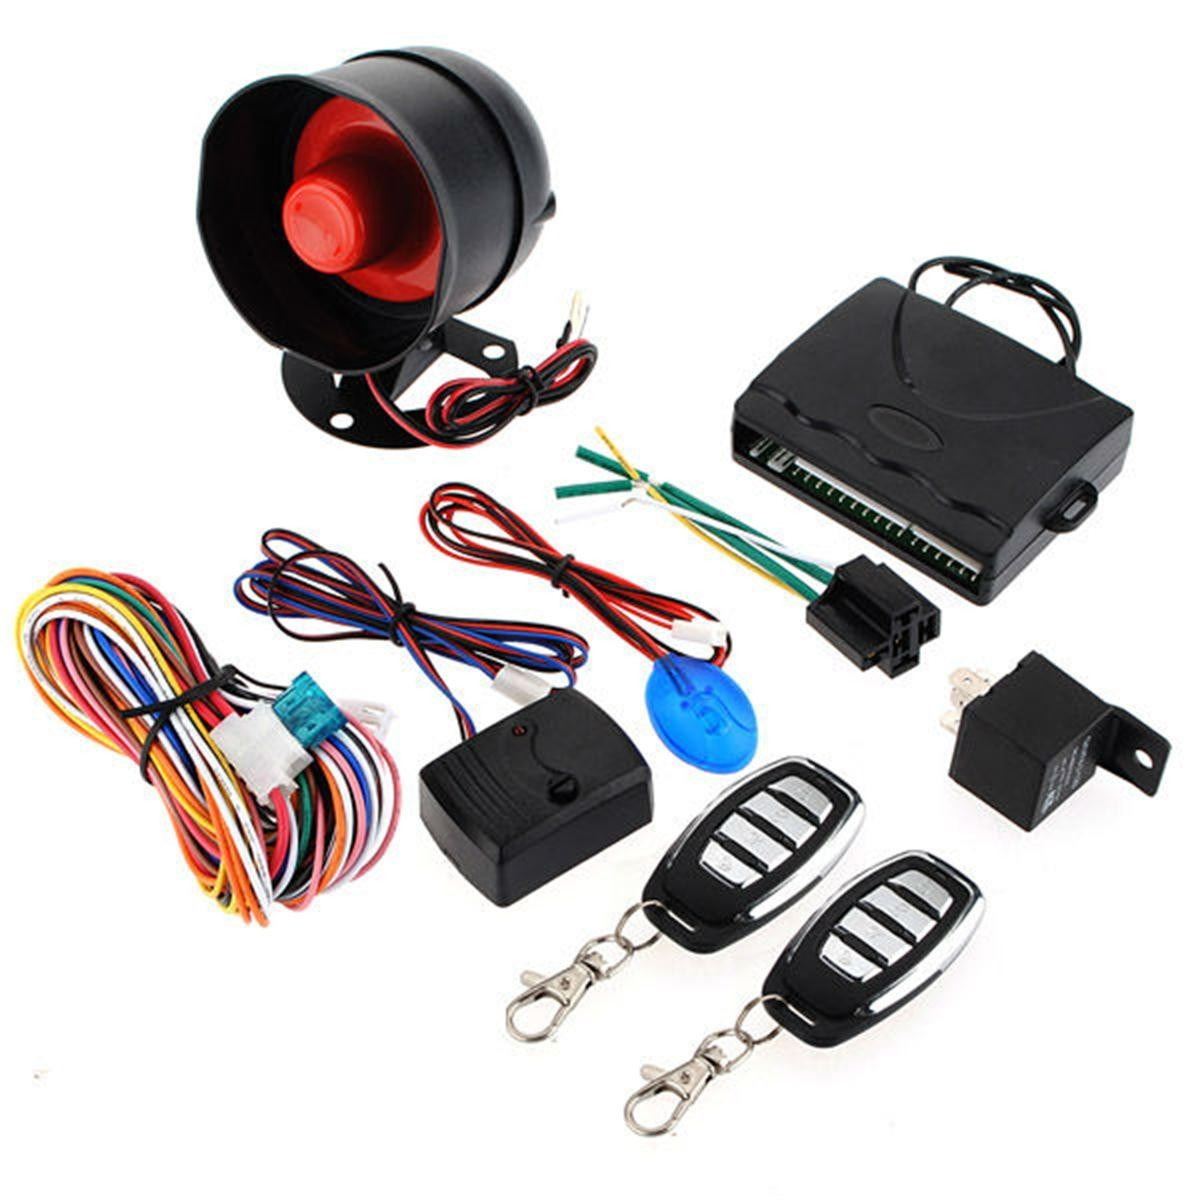 One way car alarm vehicle system protec tion security system keyless entry siren 2 remote